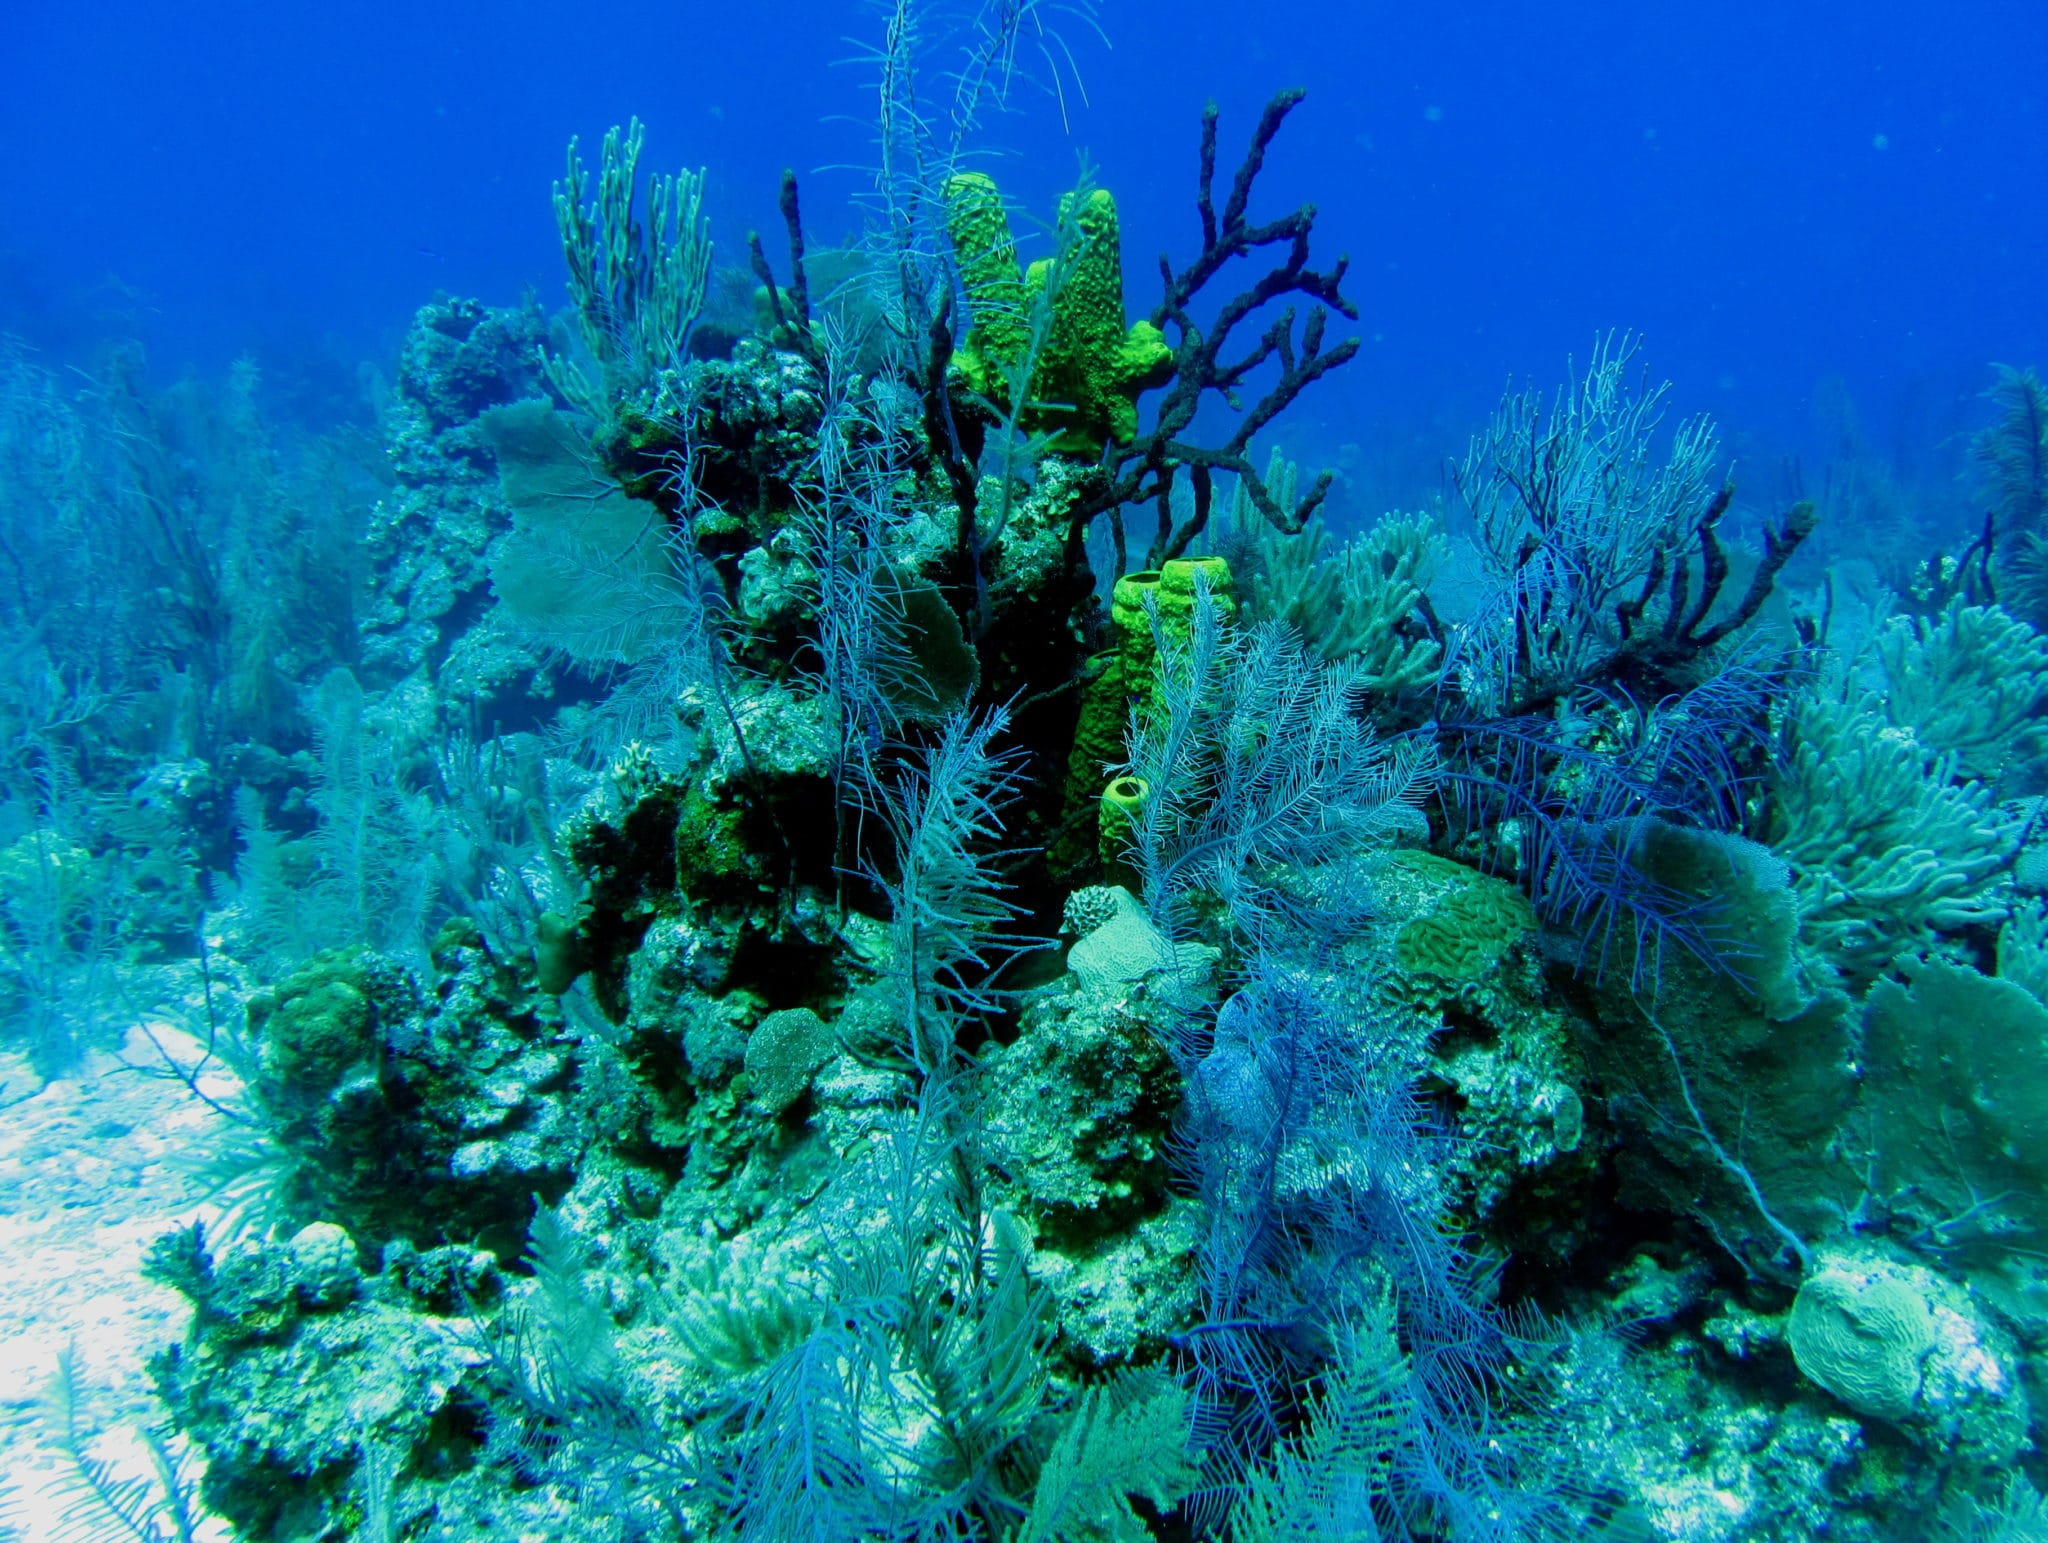 Scuba diving Lighthouse reef Belize Black coral